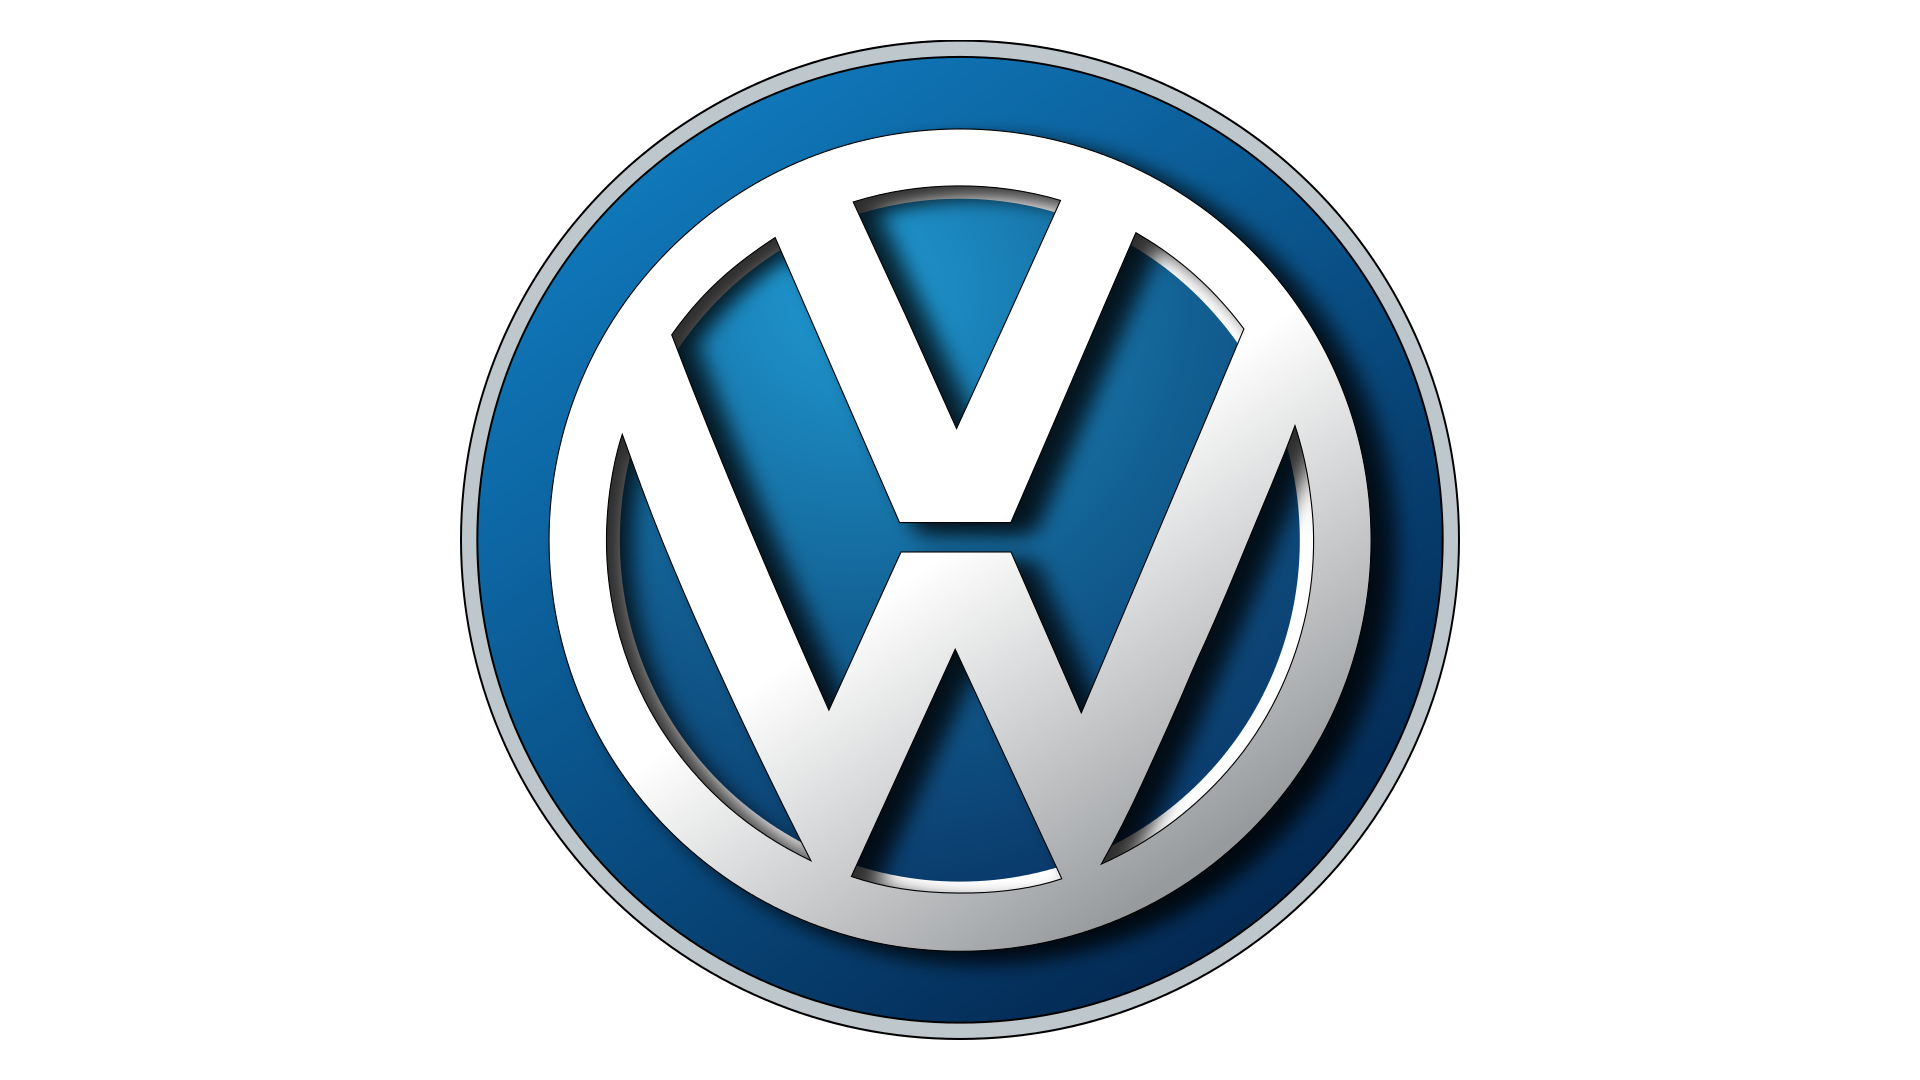 Logo .png. Volkswagen hd png meaning